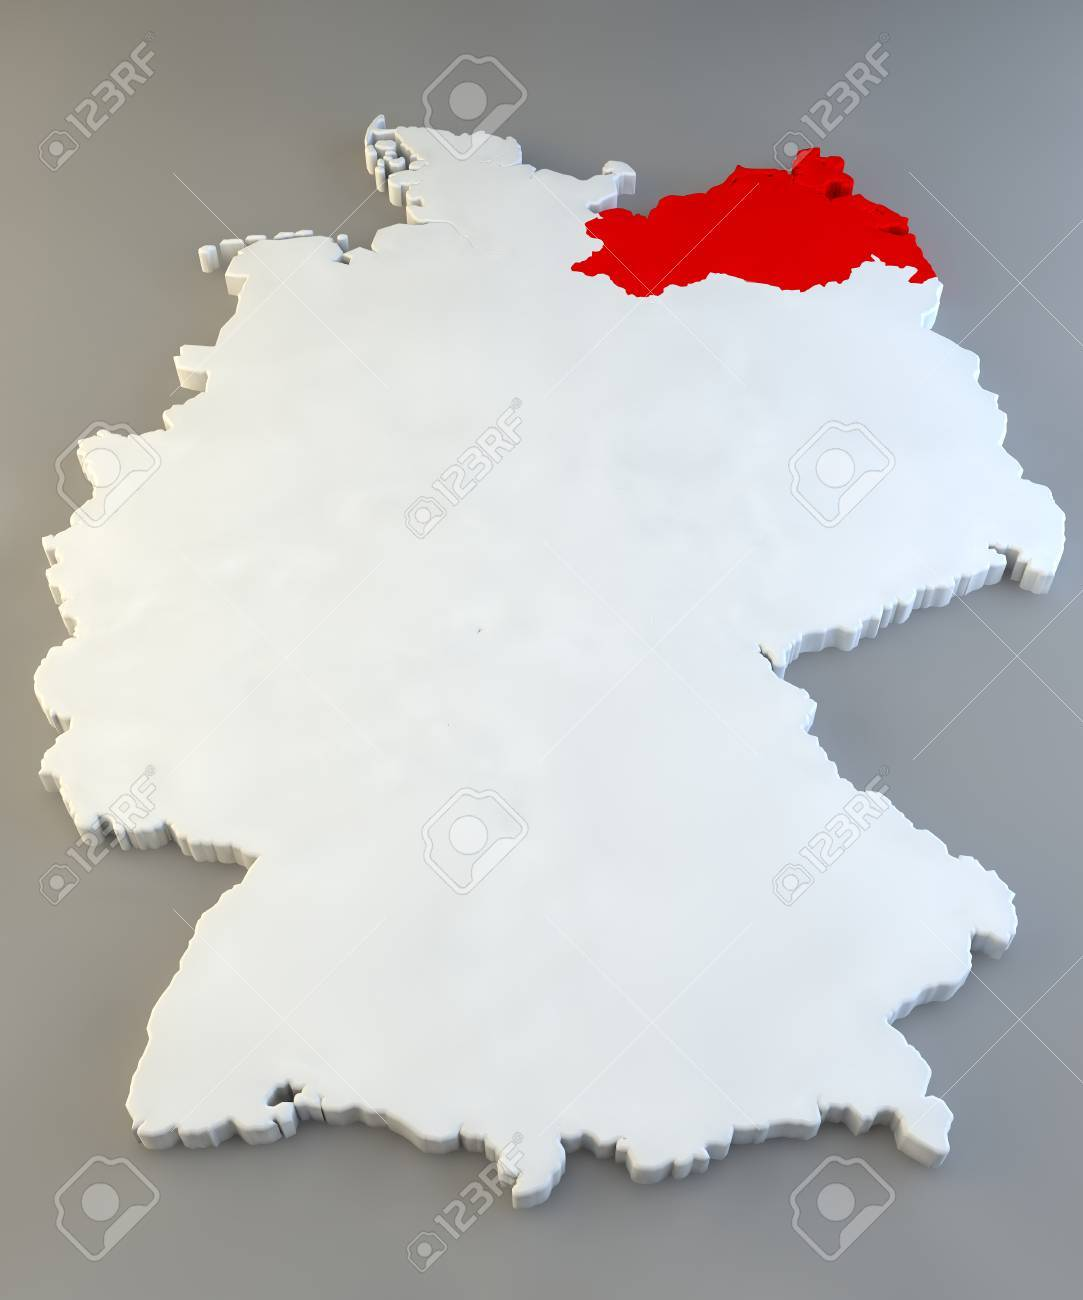 Germany Region Map MecklenburgVorpommern Stock Photo Picture And